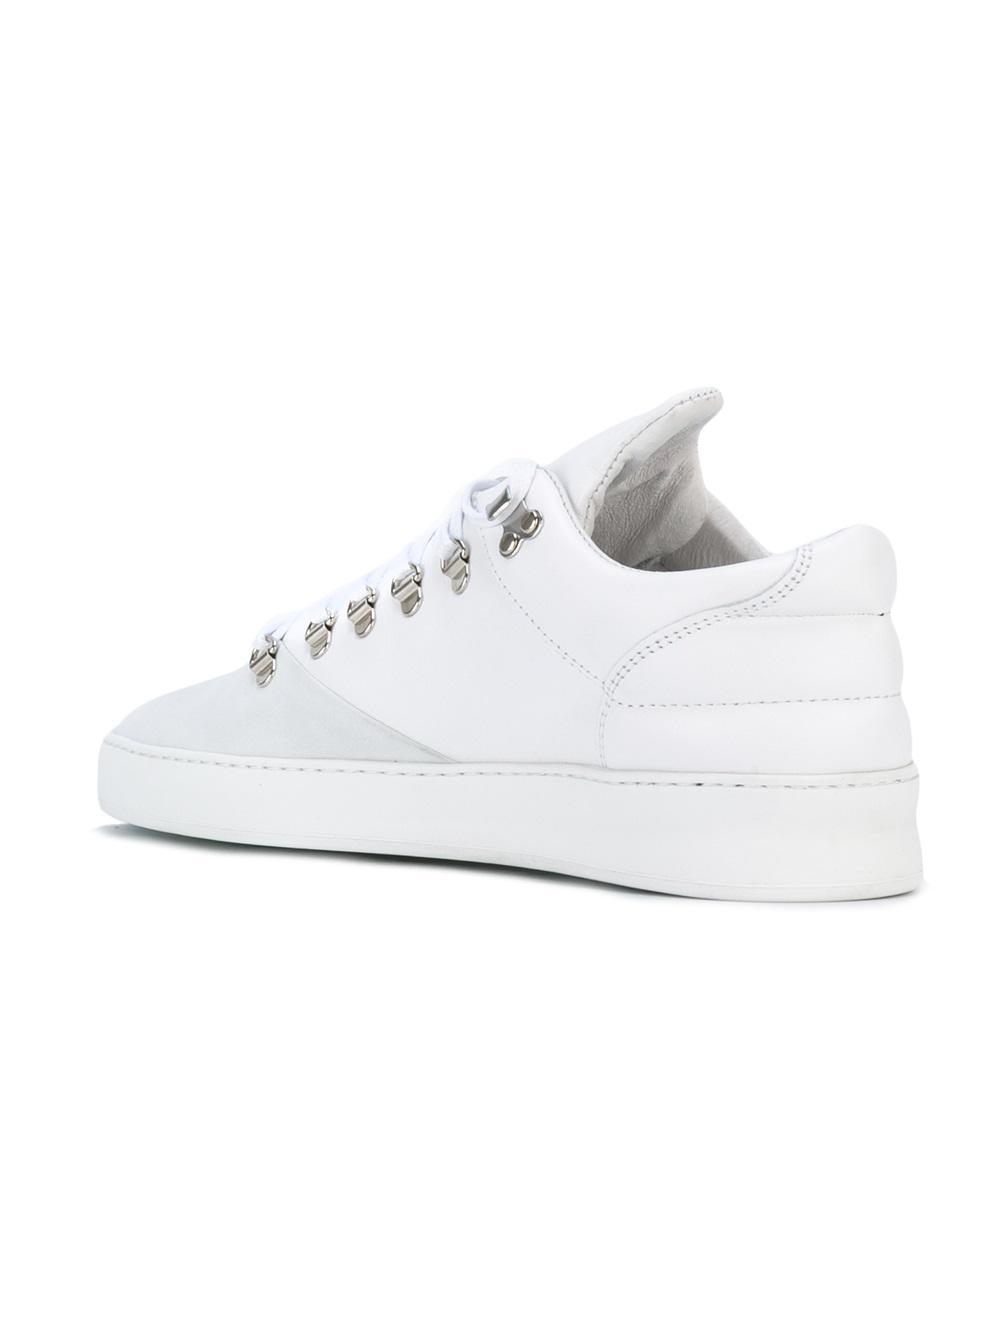 elongated tongue sneakers - White Filling Pieces MCIJ9l